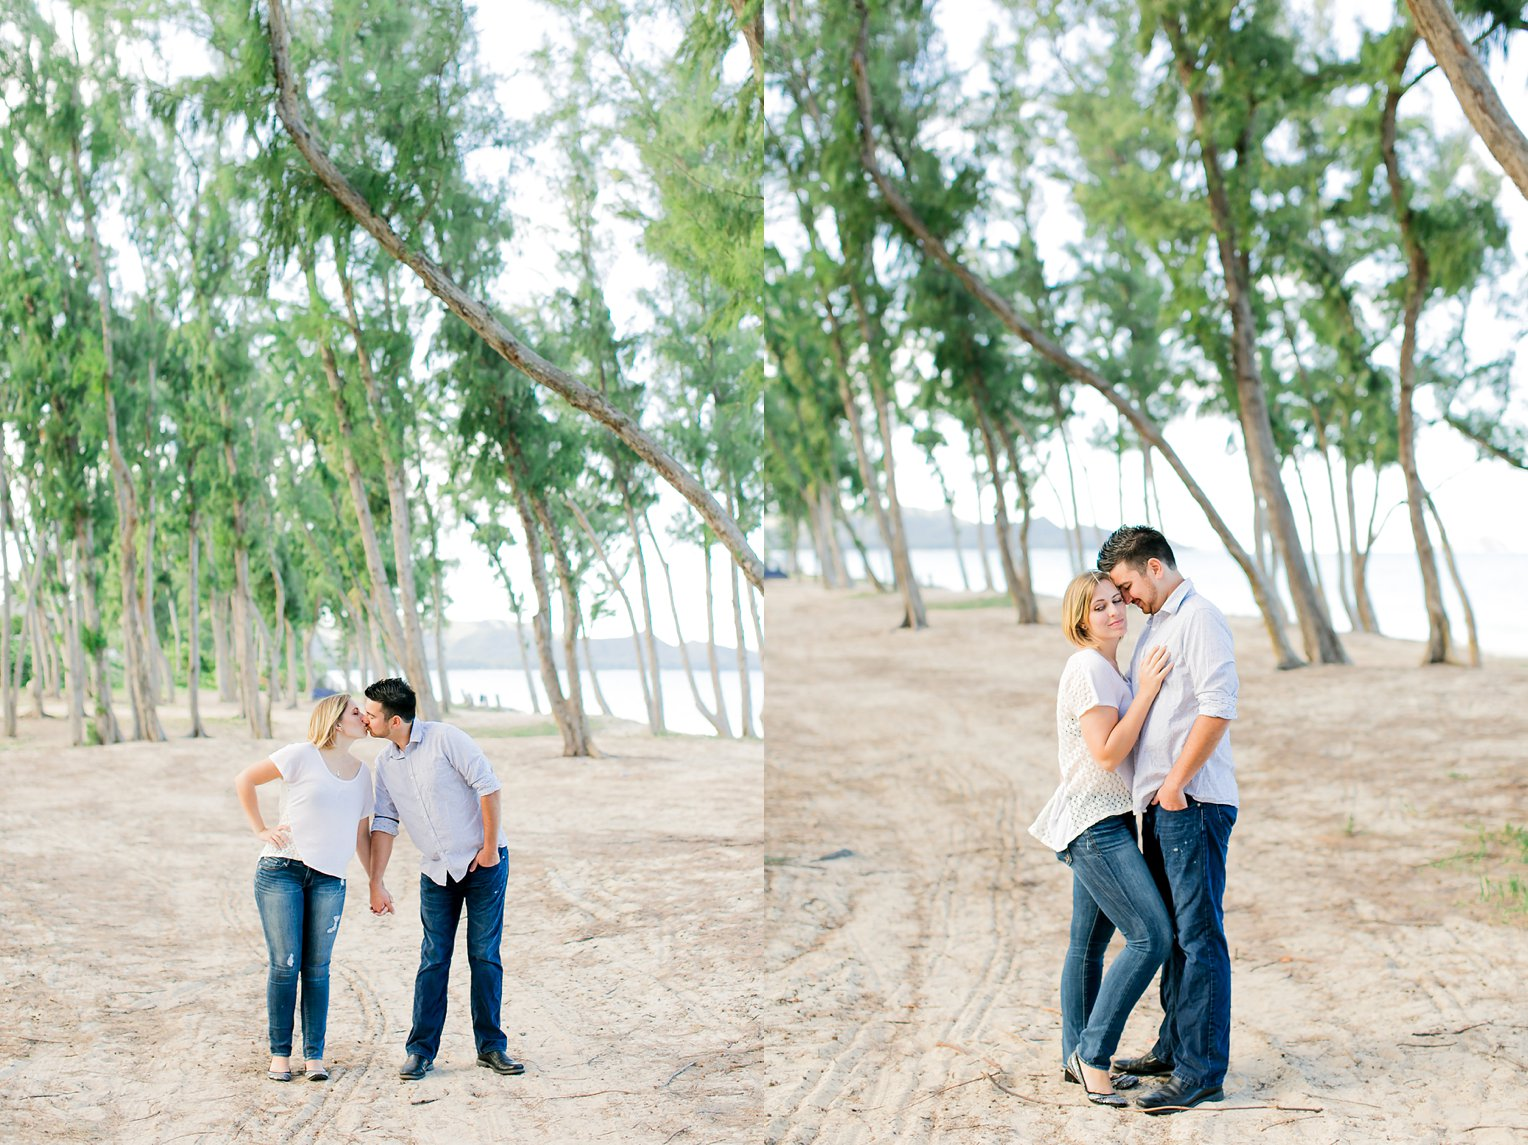 Oahu Engagement Photographer Hawaii Wedding Photographer_0010.jpg